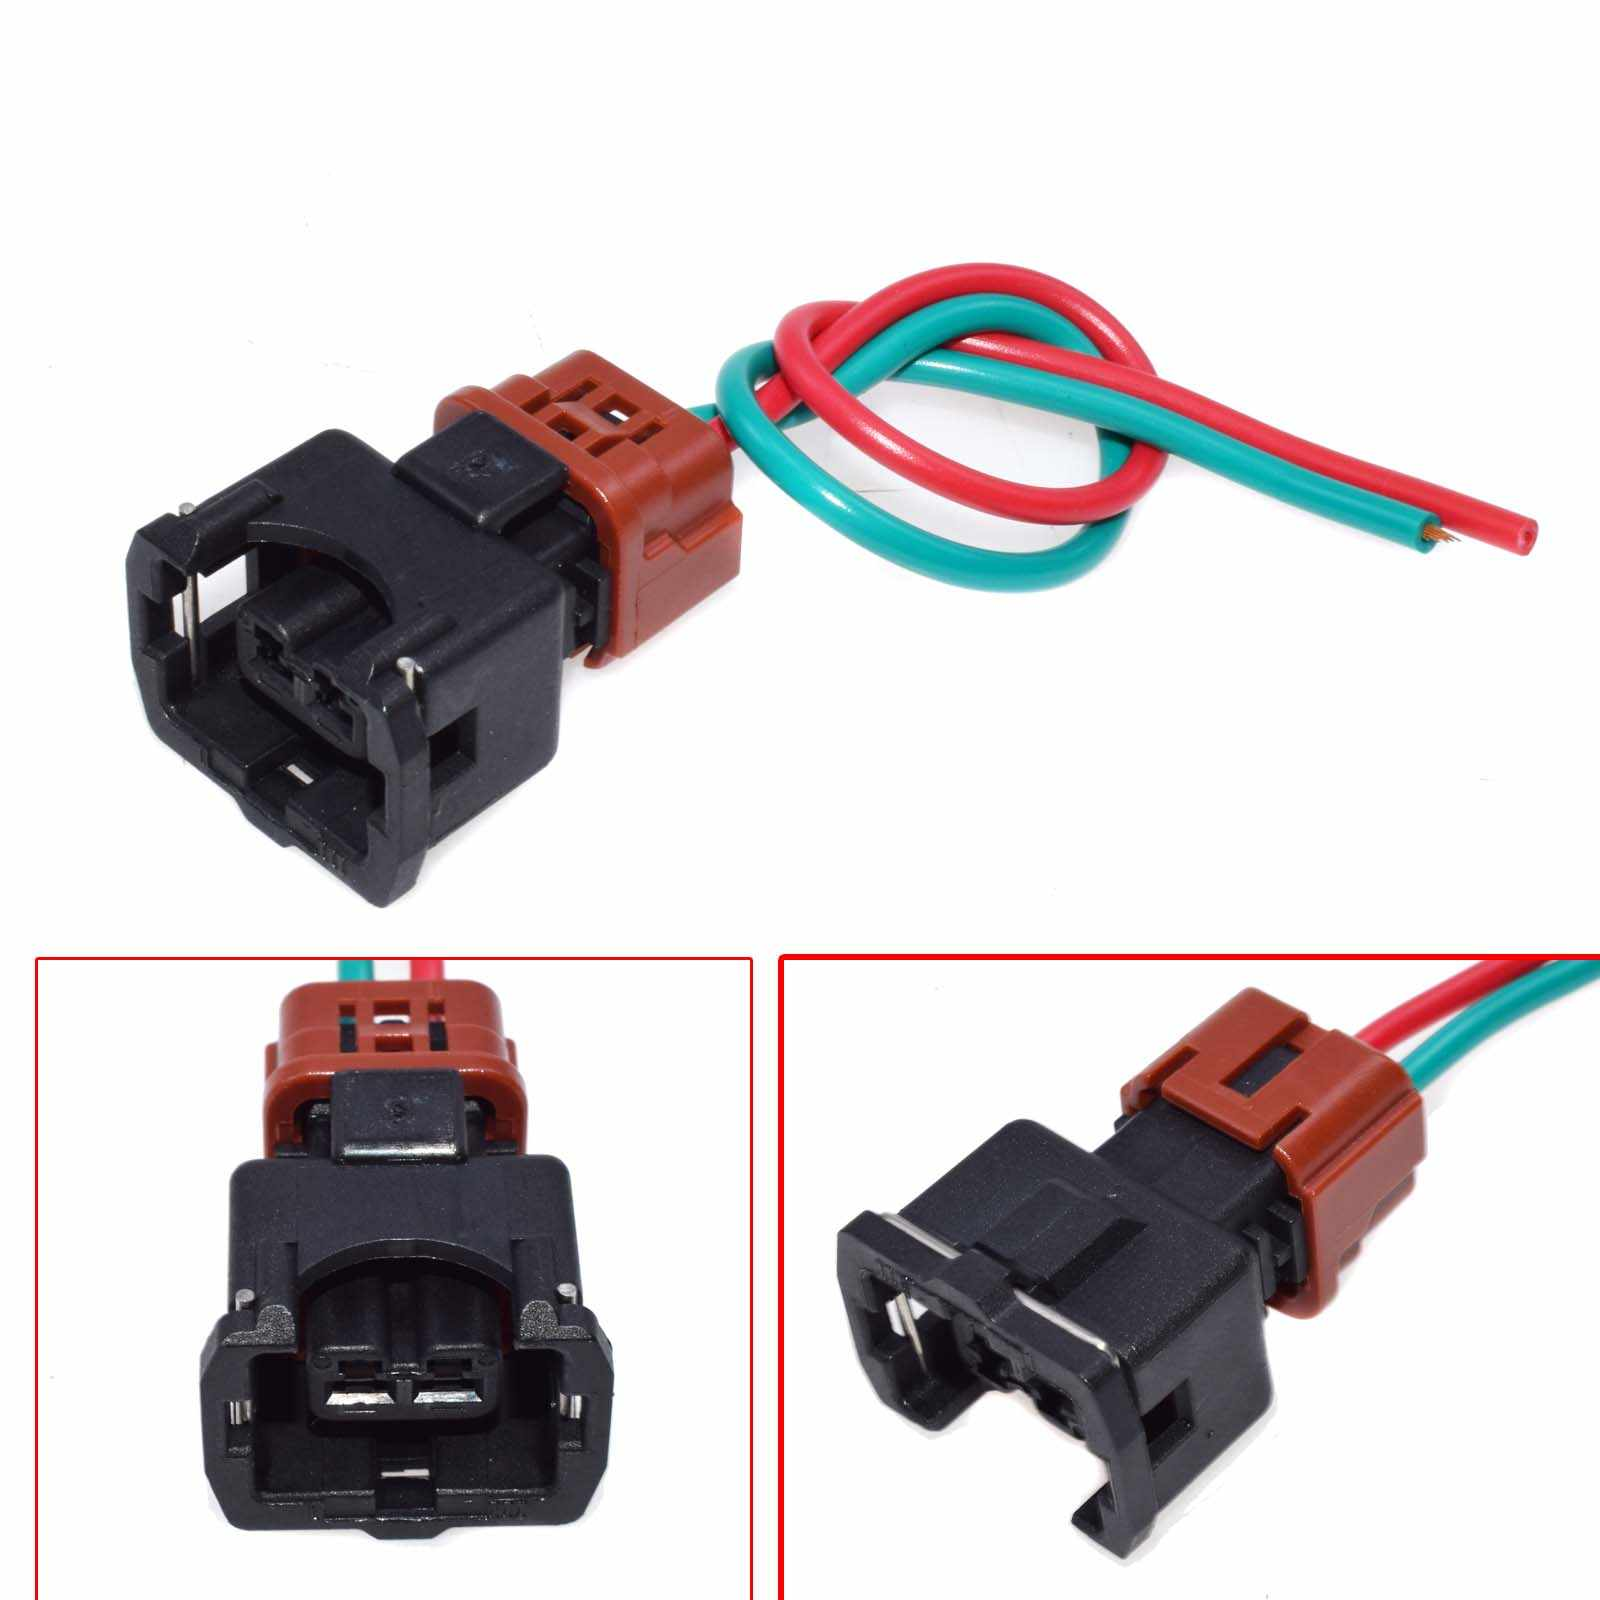 Fuel Injector Connector Clips Fits for NISSAN 300ZX Z32 90 ... on